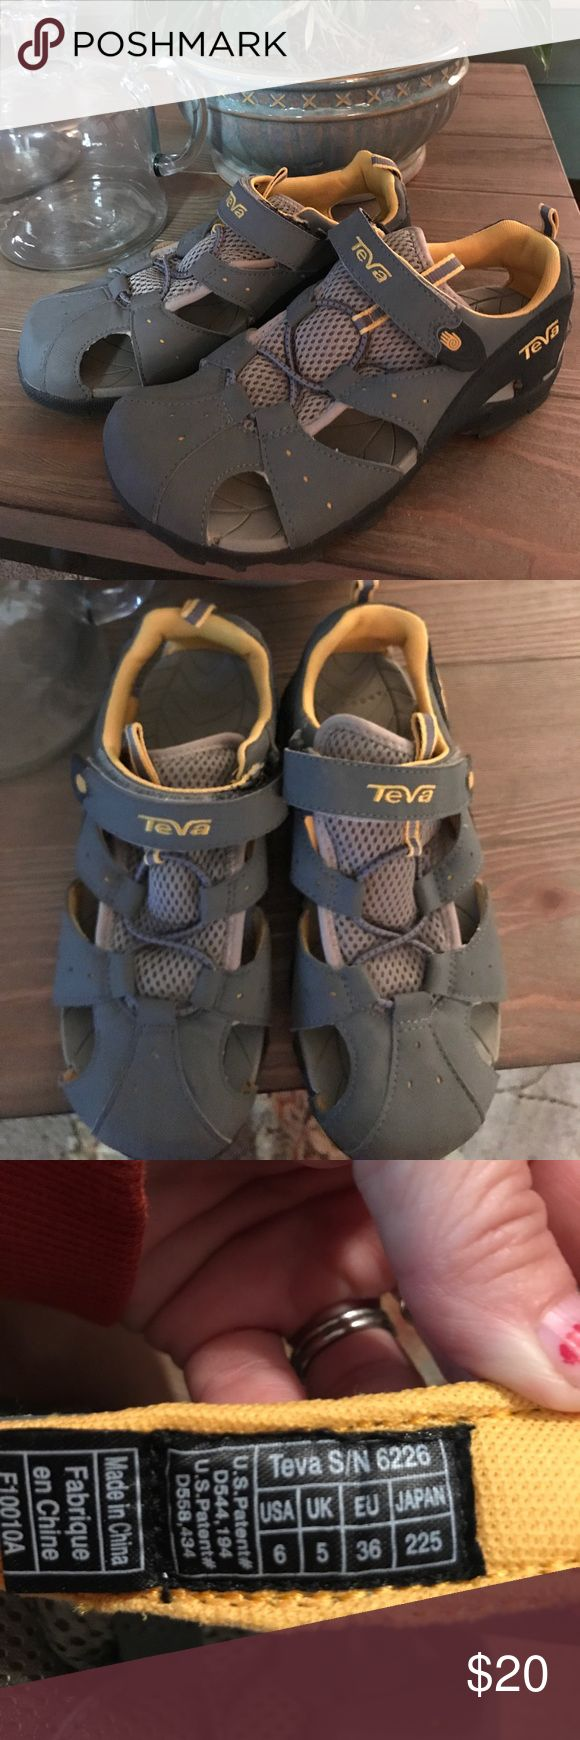 SPERRY SANDALS!!🔥 Brand new Sperry sandals! Bought them and just never wore them.😊 Teva Shoes Sandals